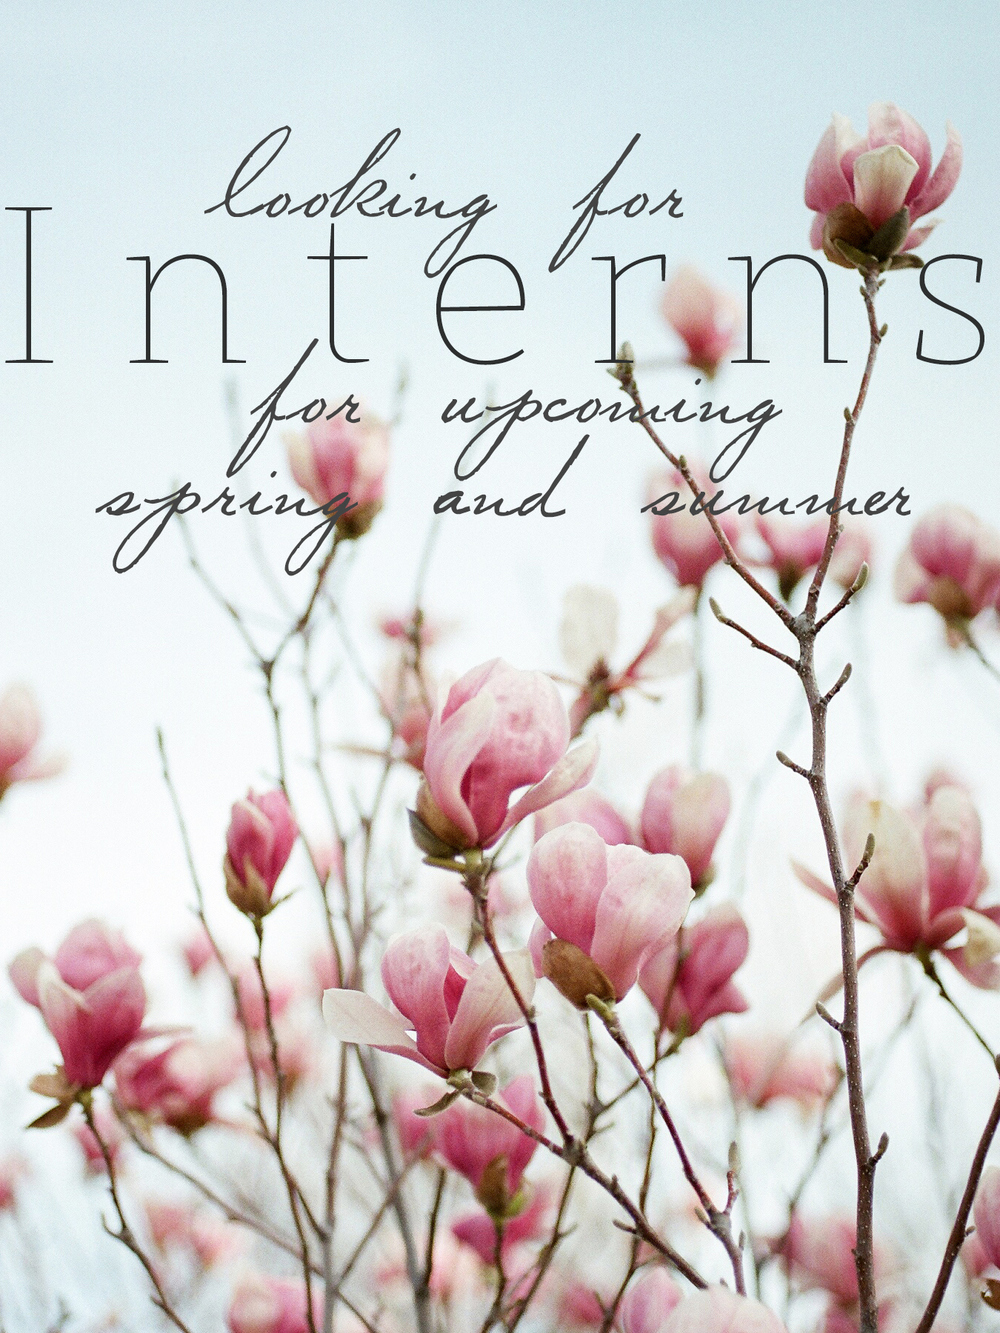 We're looking for interns for this coming spring and summer! We've had several inquires asking whether or not we are accepting positions and we are so excited to say yes! Because our business is so new we are only looking for internships and would love to talk to you individually about what you're interests are whether it's floral design or event styling and coordinating. This internship will be based around the events we have and leading up to them. We're looking for like minded people who are excited about what is to come for Oklahoma weddings and want hands on experience !   Please send your resume to Taylor@EverSomething.com or Katie@EverSomething.com and we will be contacting you to set up a meeting.